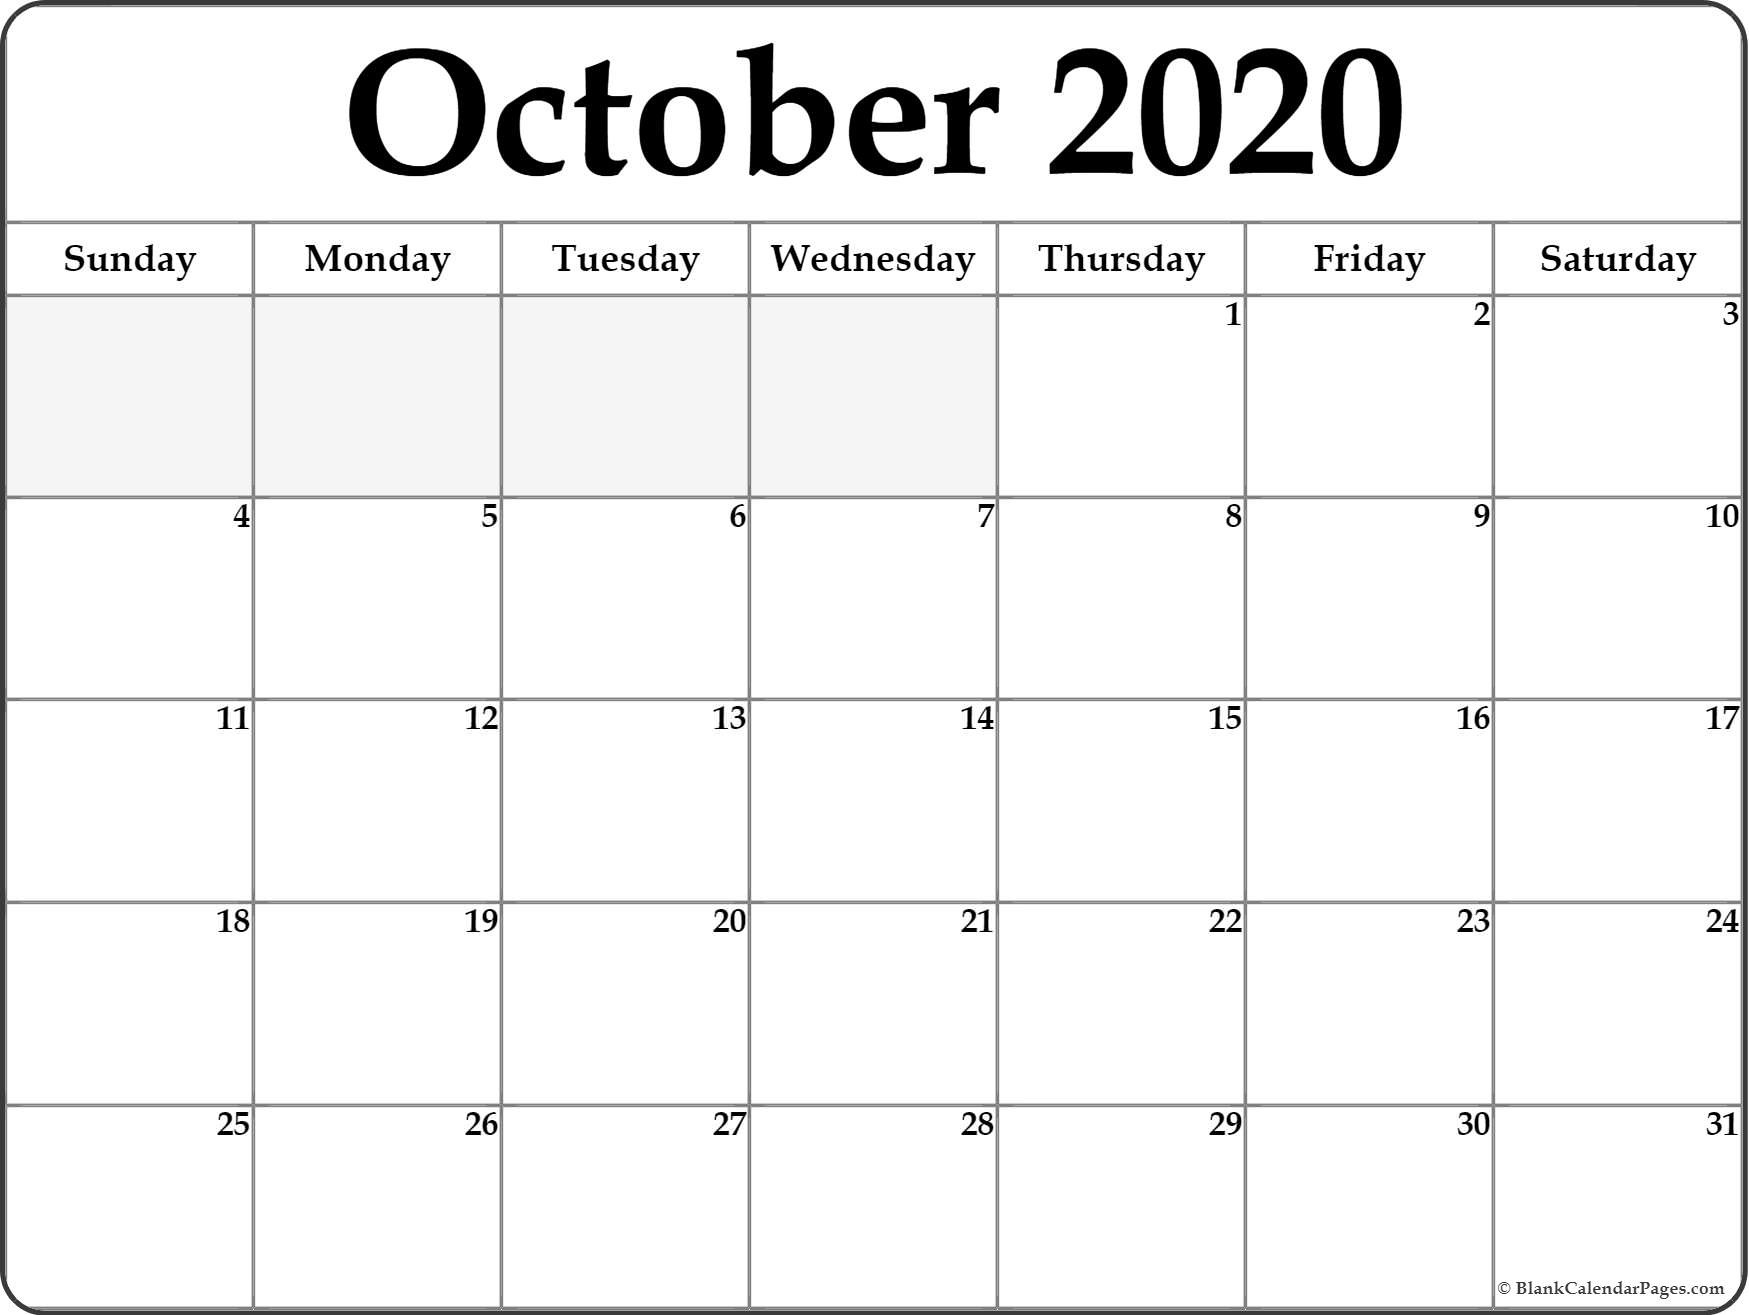 October 2020 Calendar | Free Printable Monthly Calendars-October 2020 Monthly Calendar Blank Printable